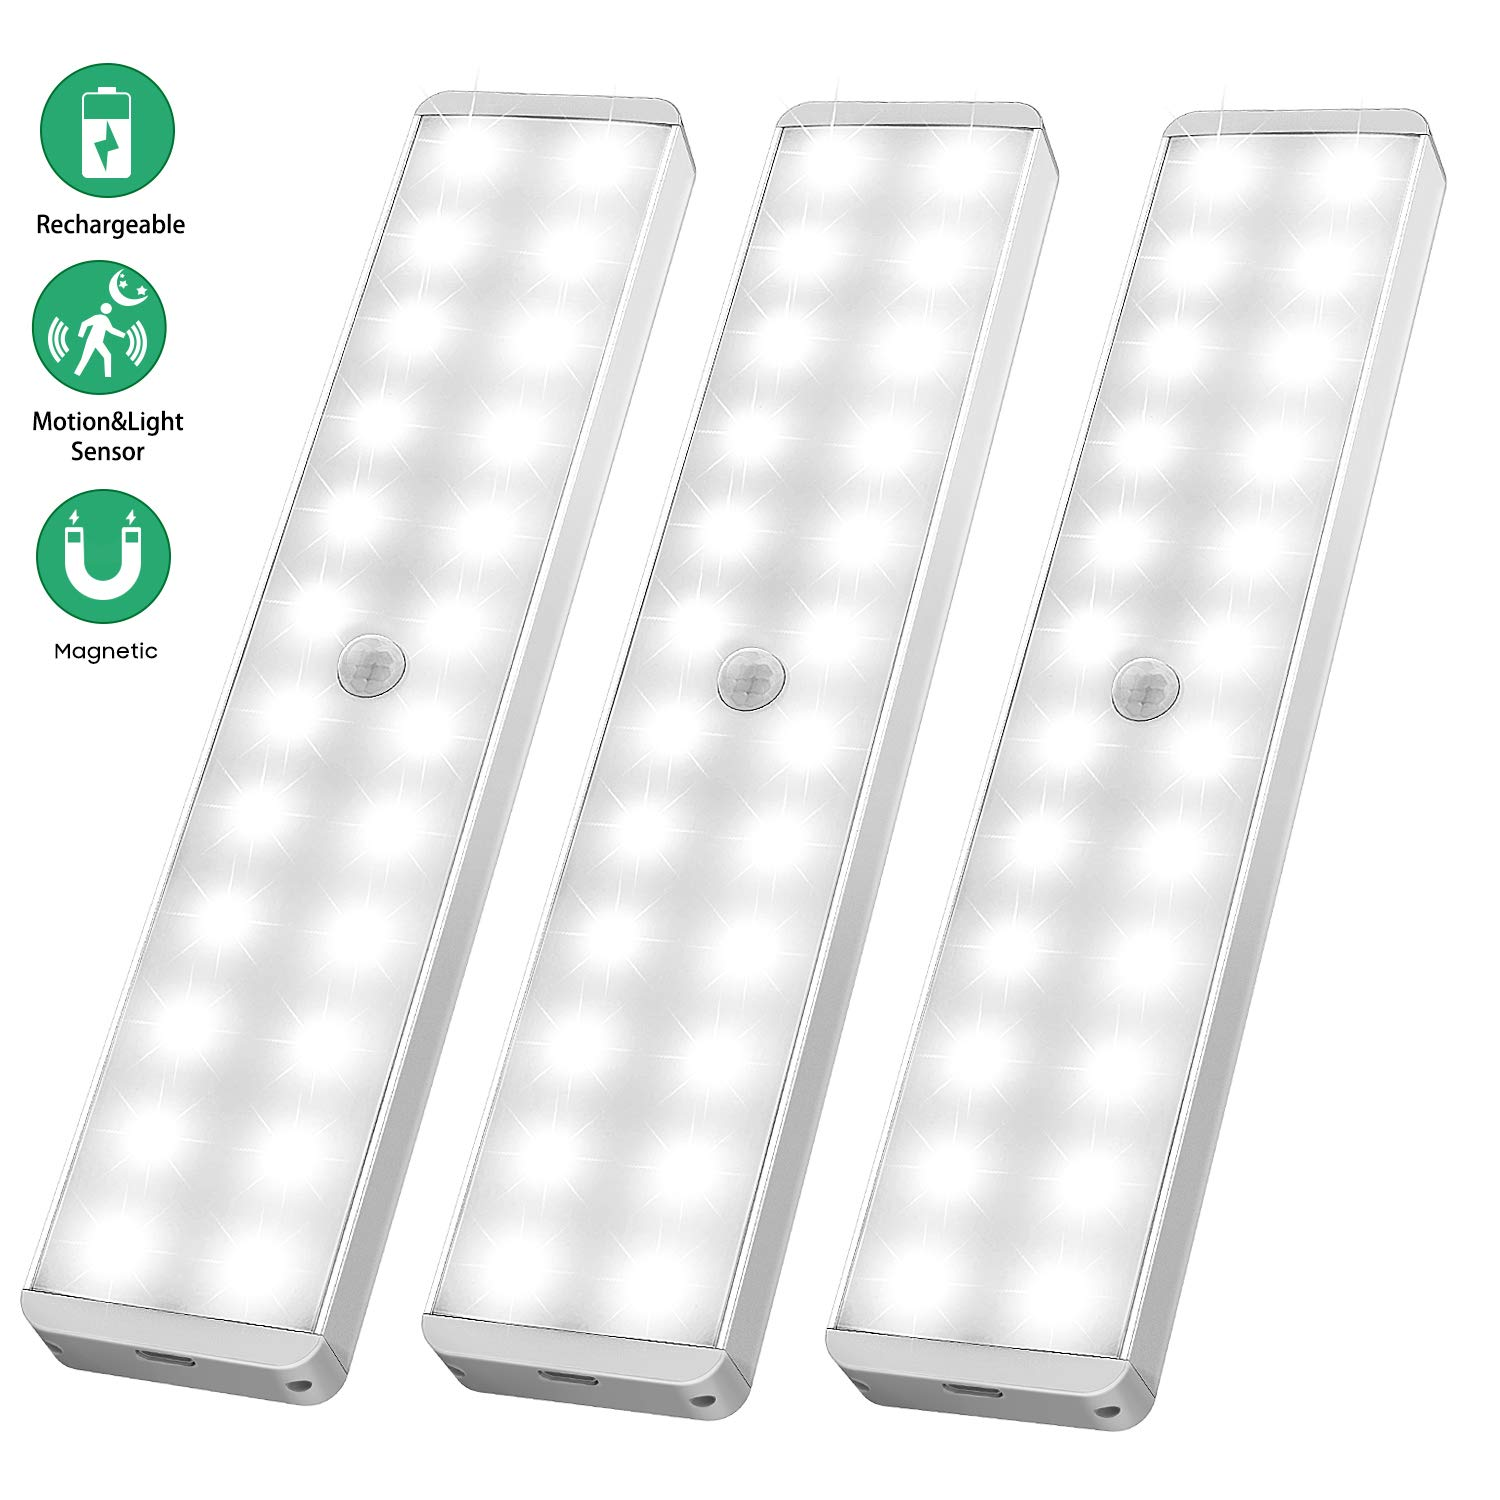 LED Closet Light, 24-LED Newest Version Rechargeable Motion Sensor Closet Light Wireless Under Cabinet Light with Large Battery Life for Closet,Cabinet,Wardrobe,Kitchen,Hallway (3 Pack)